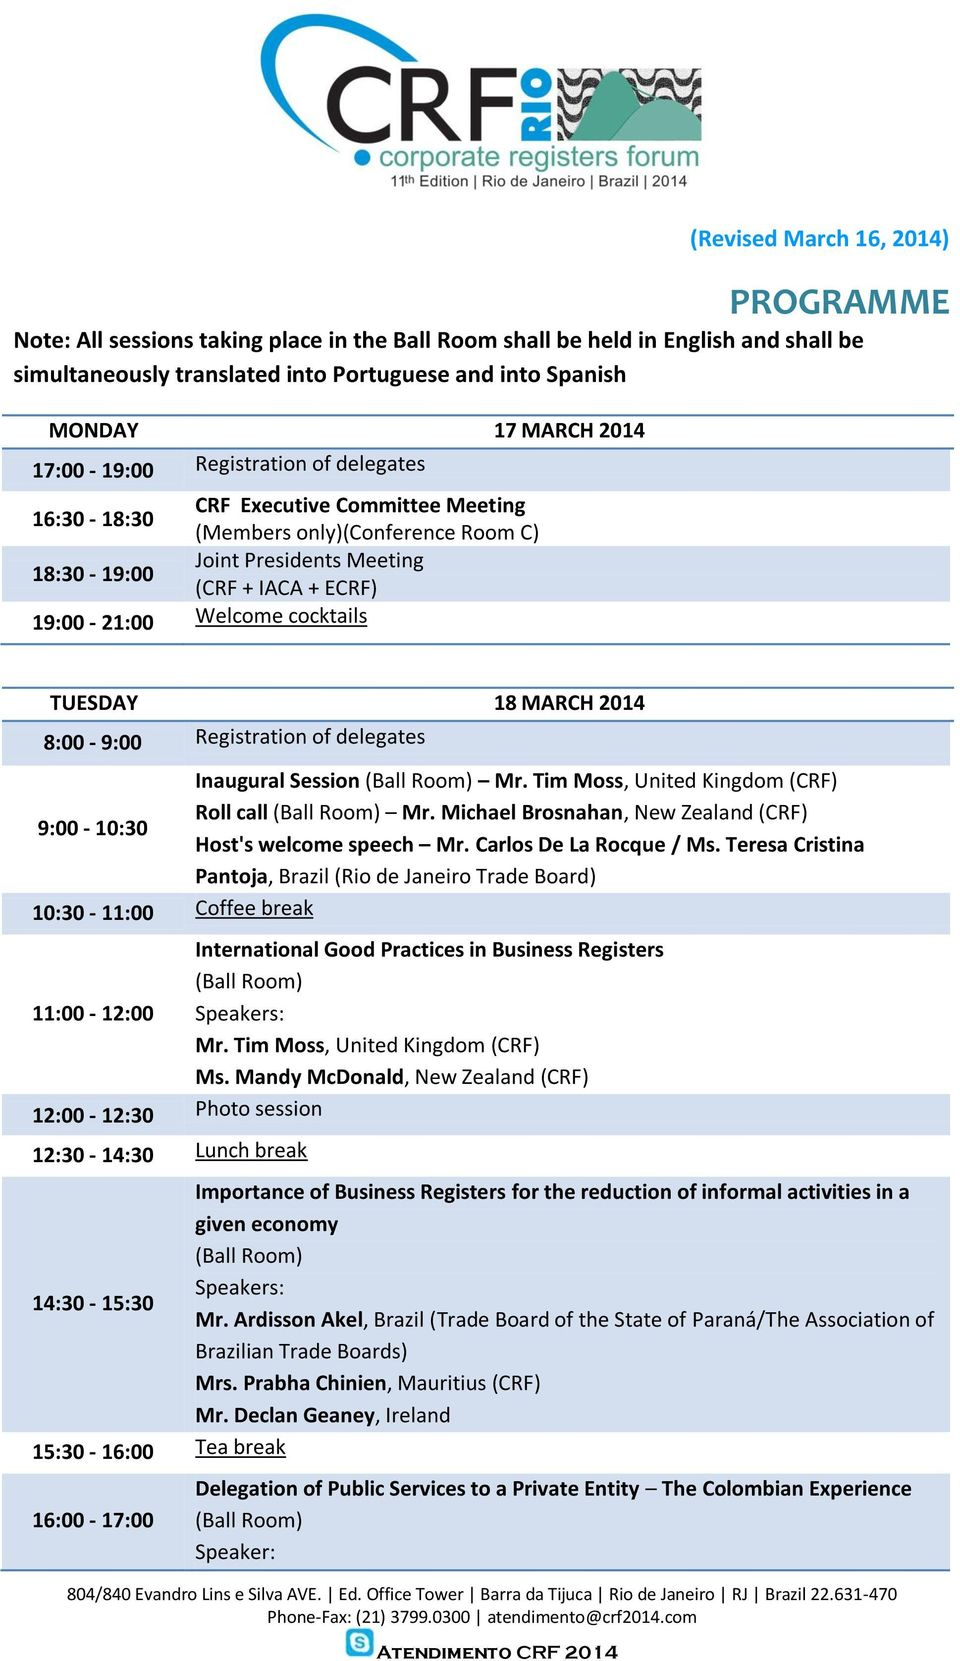 18 MARCH 2014 8:00-9:00 Registration of delegates Inaugural Session Mr. Tim Moss, United Kingdom (CRF) Roll call Mr. Michael Brosnahan, New Zealand (CRF) 9:00-10:30 Host's welcome speech Mr.